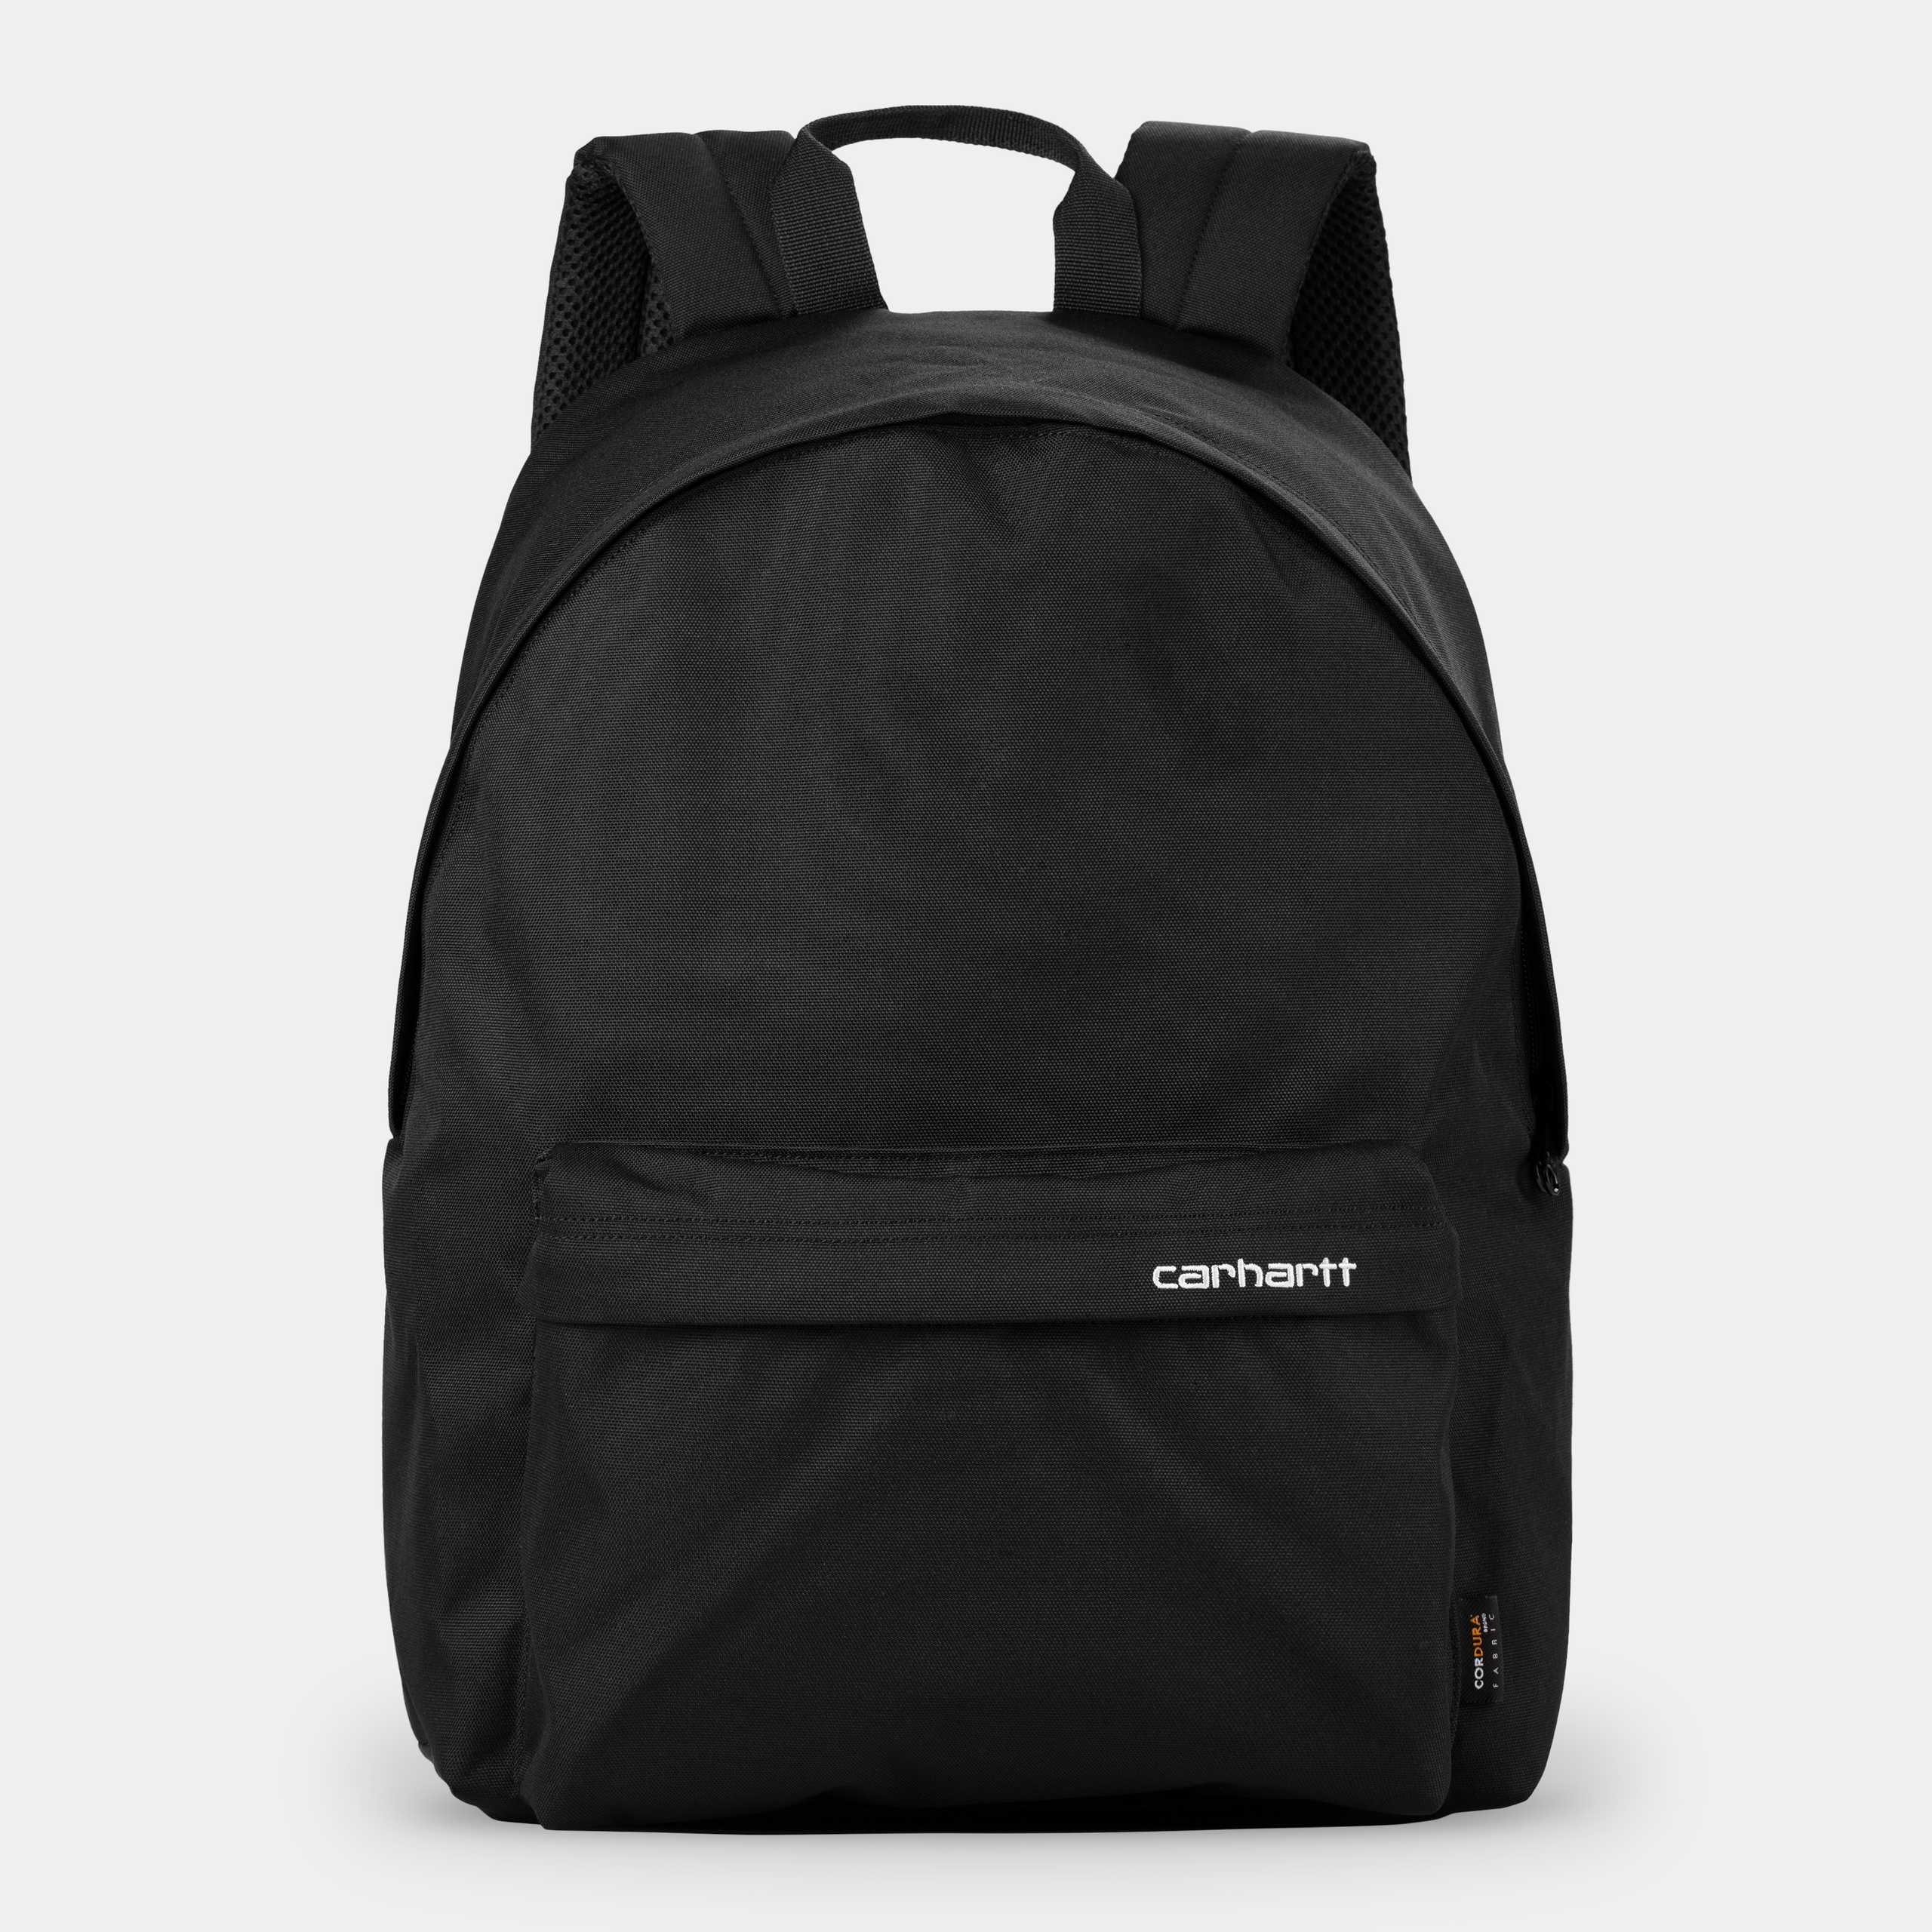 CARHARTT PAYTON BACKPACK